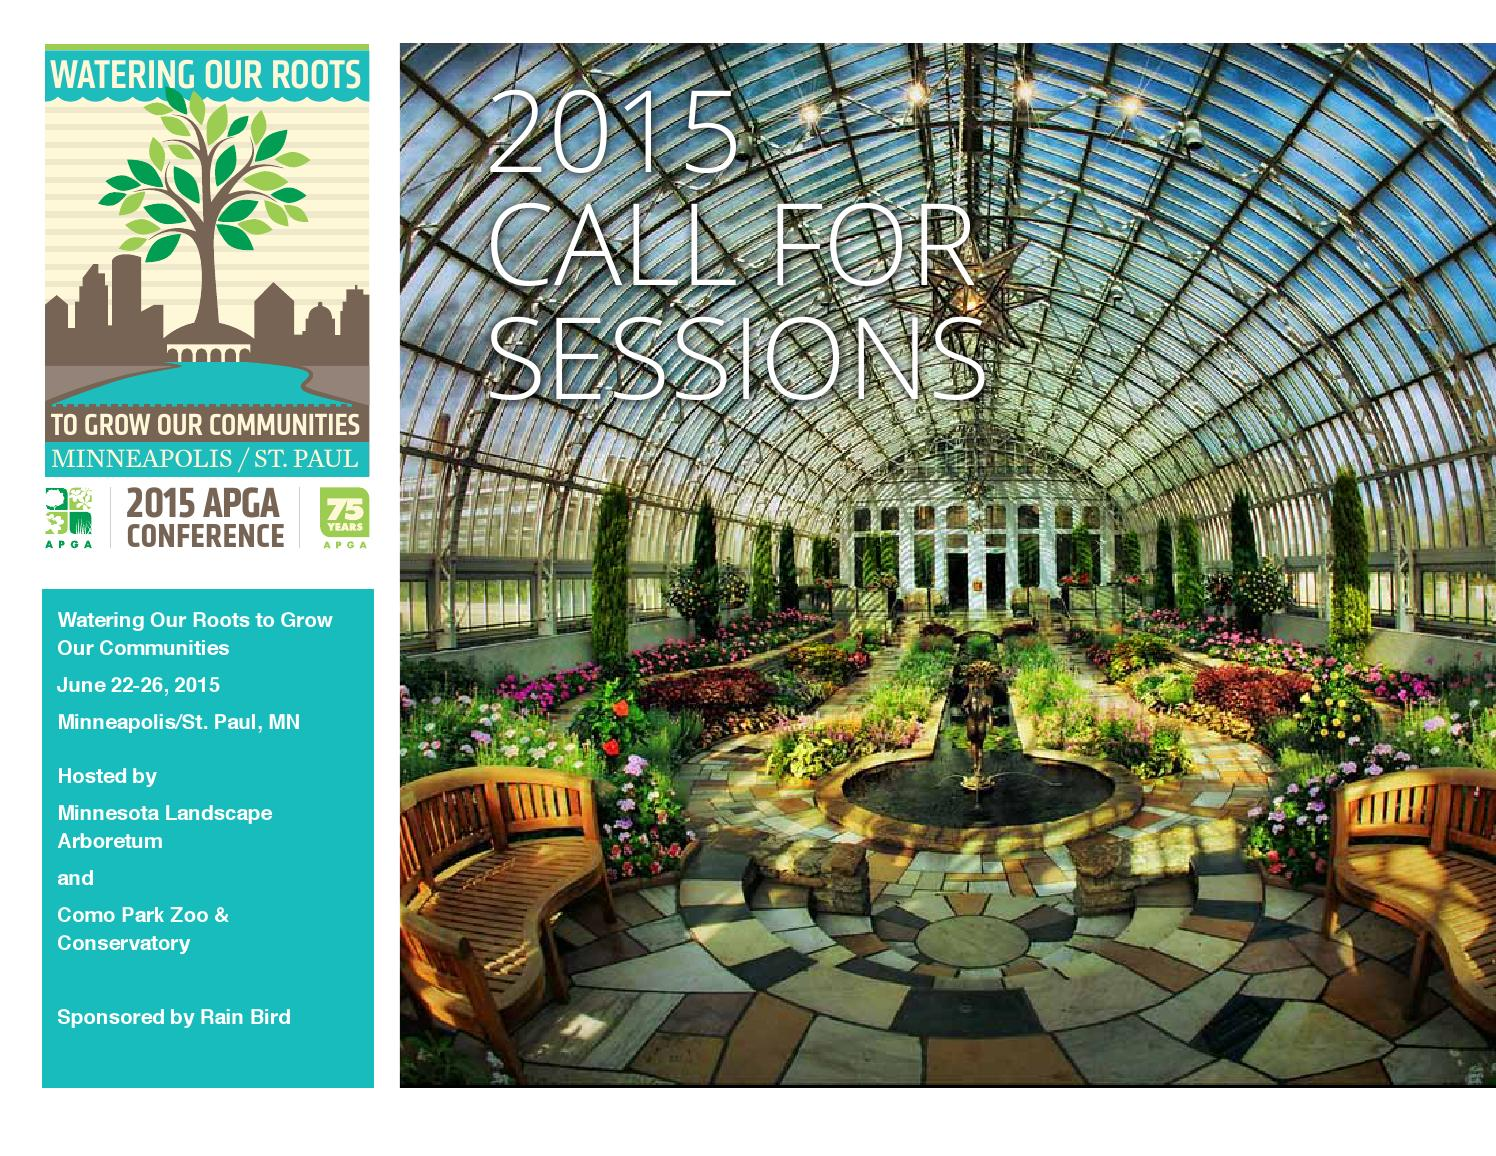 Apga 2015 Call For Sessions By American Public Gardens